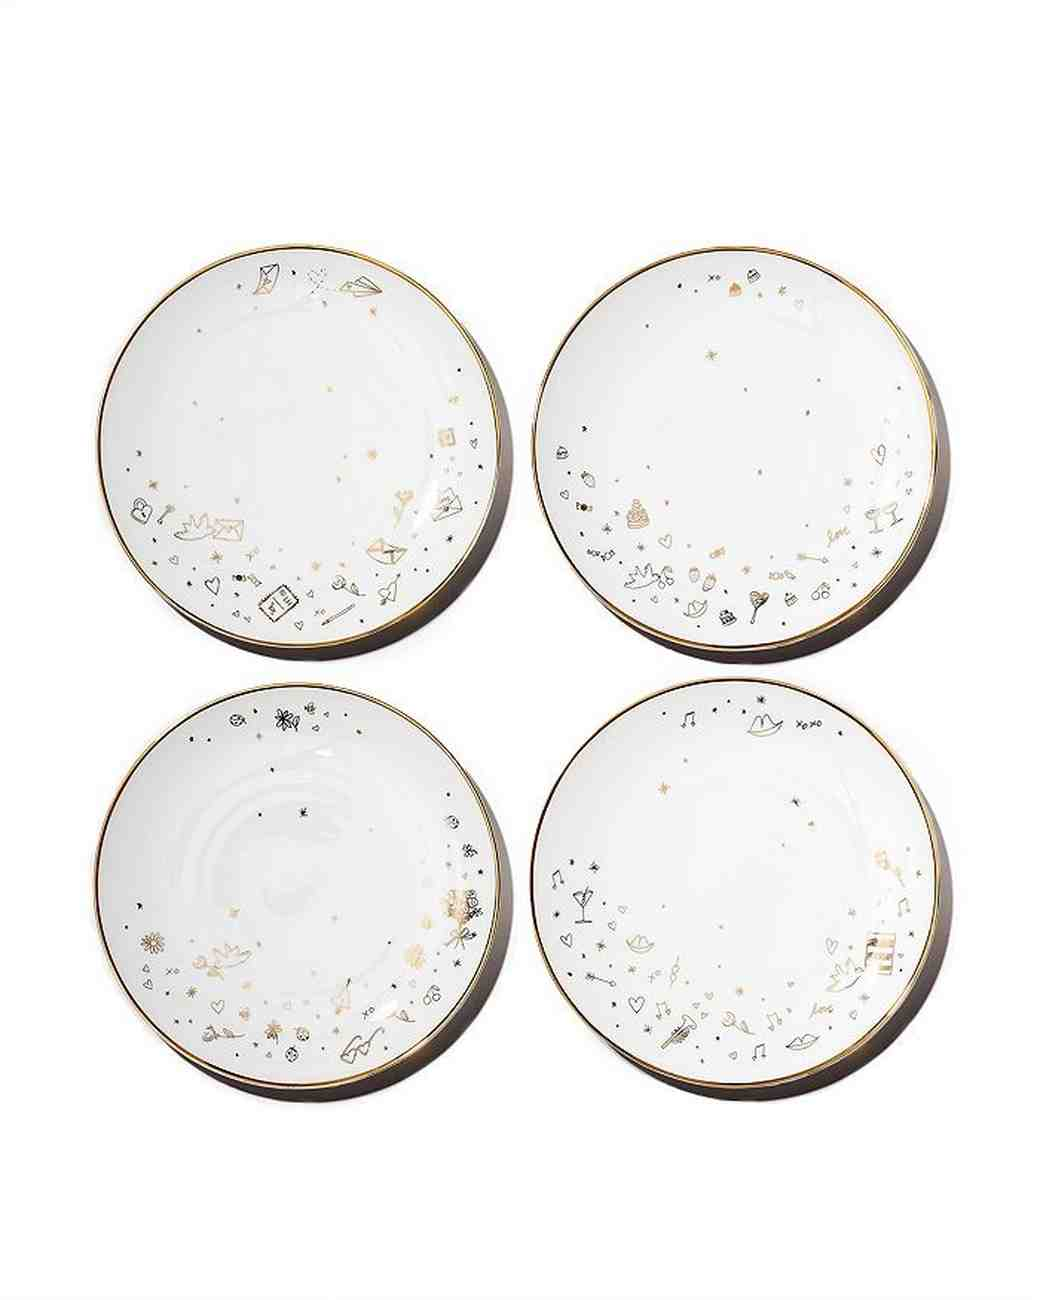 Darcy Miller x Lenox Celebrate Everything Plates